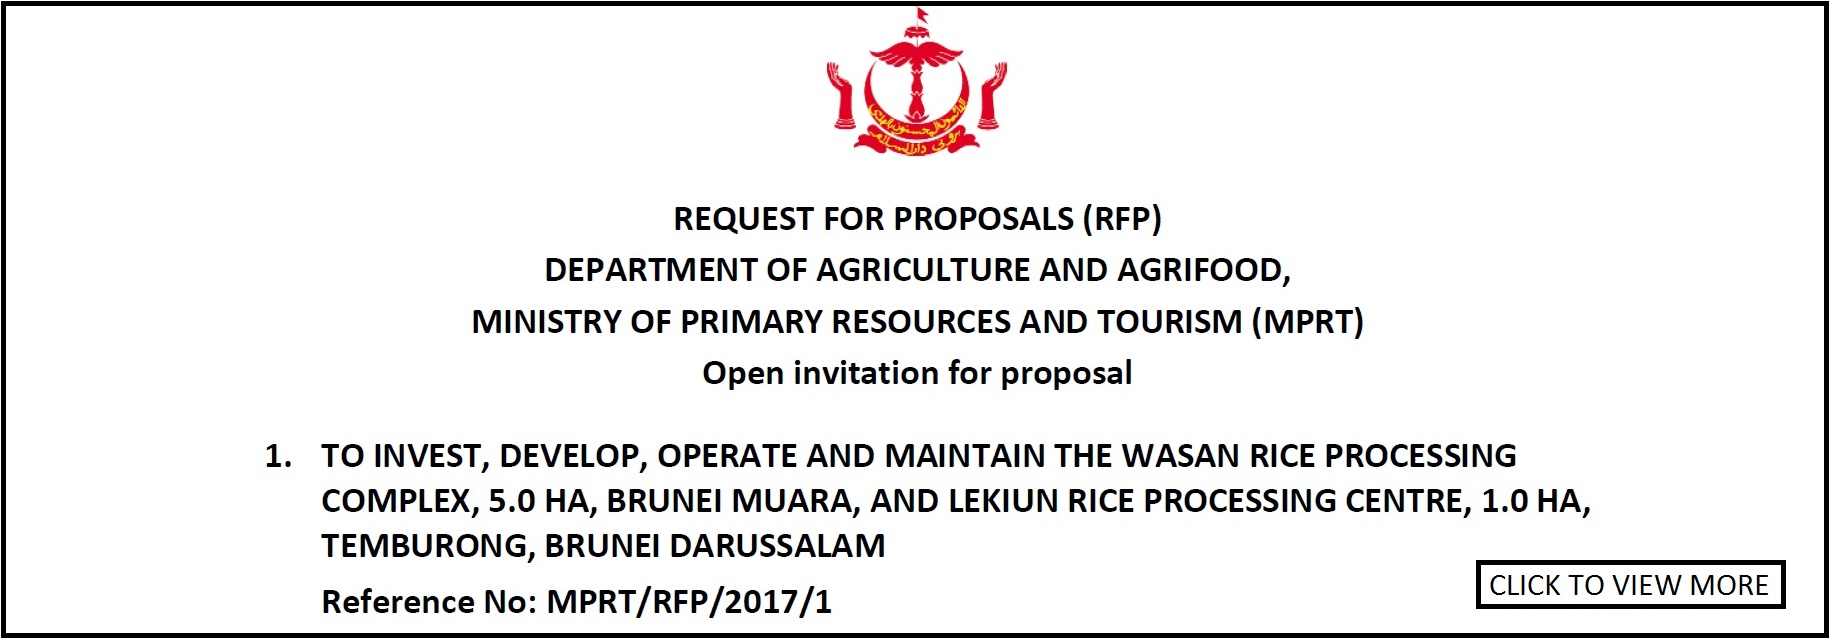 Tender and Requests For Proposal - Tender and Requests For